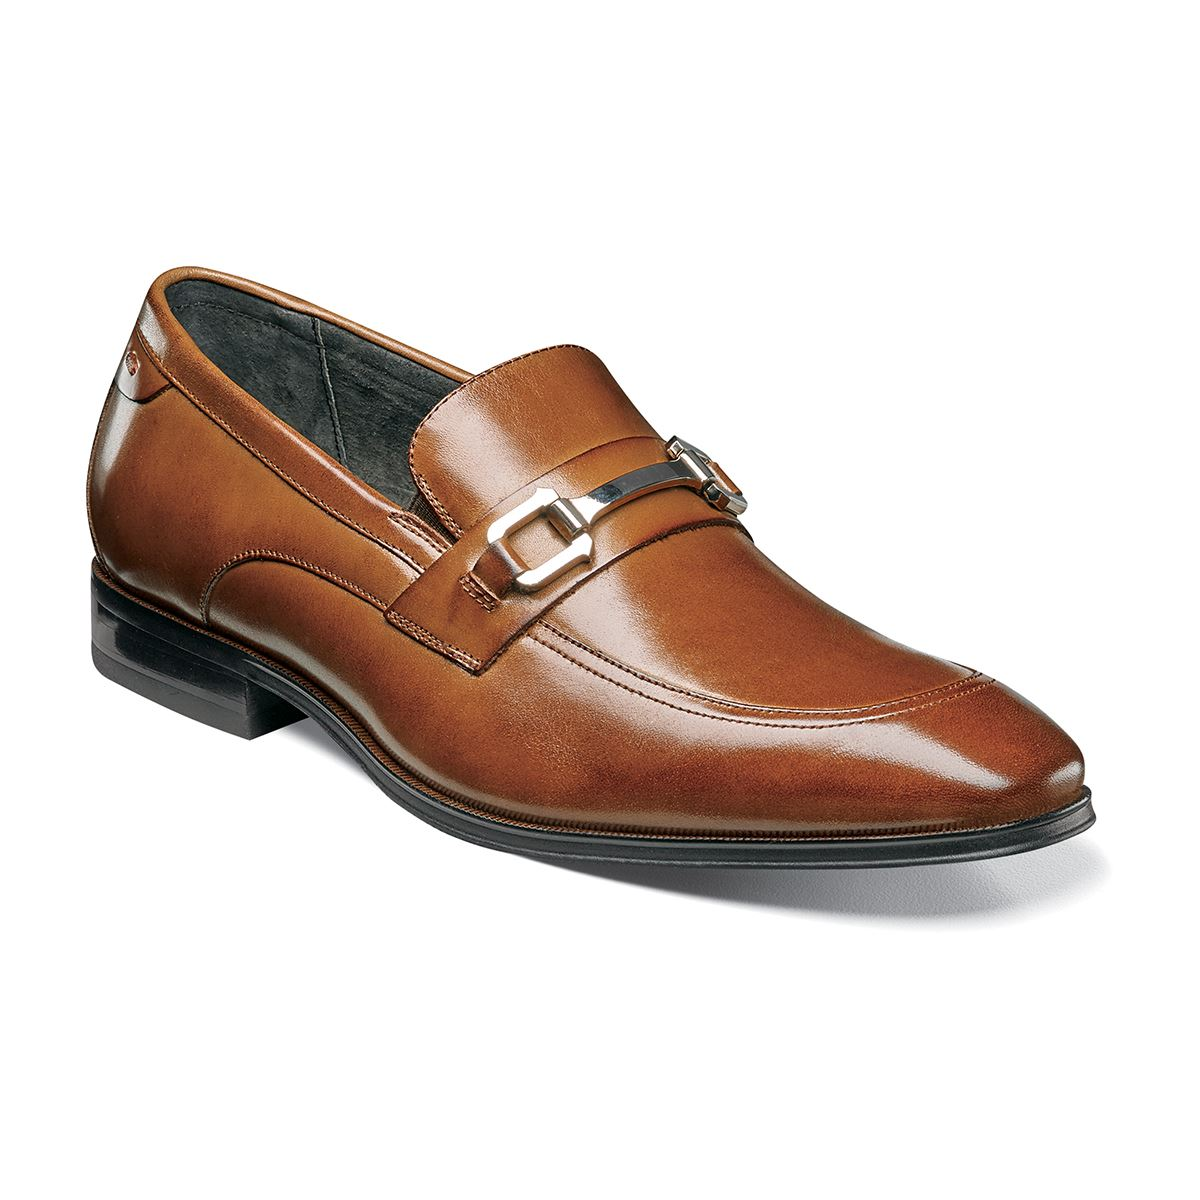 Best Selling Mens Stacy Adams Faraday Bit Loafer 24999 Cognac Leather Mens Cognac Leather Stacy Adams Mens Stacy Adams